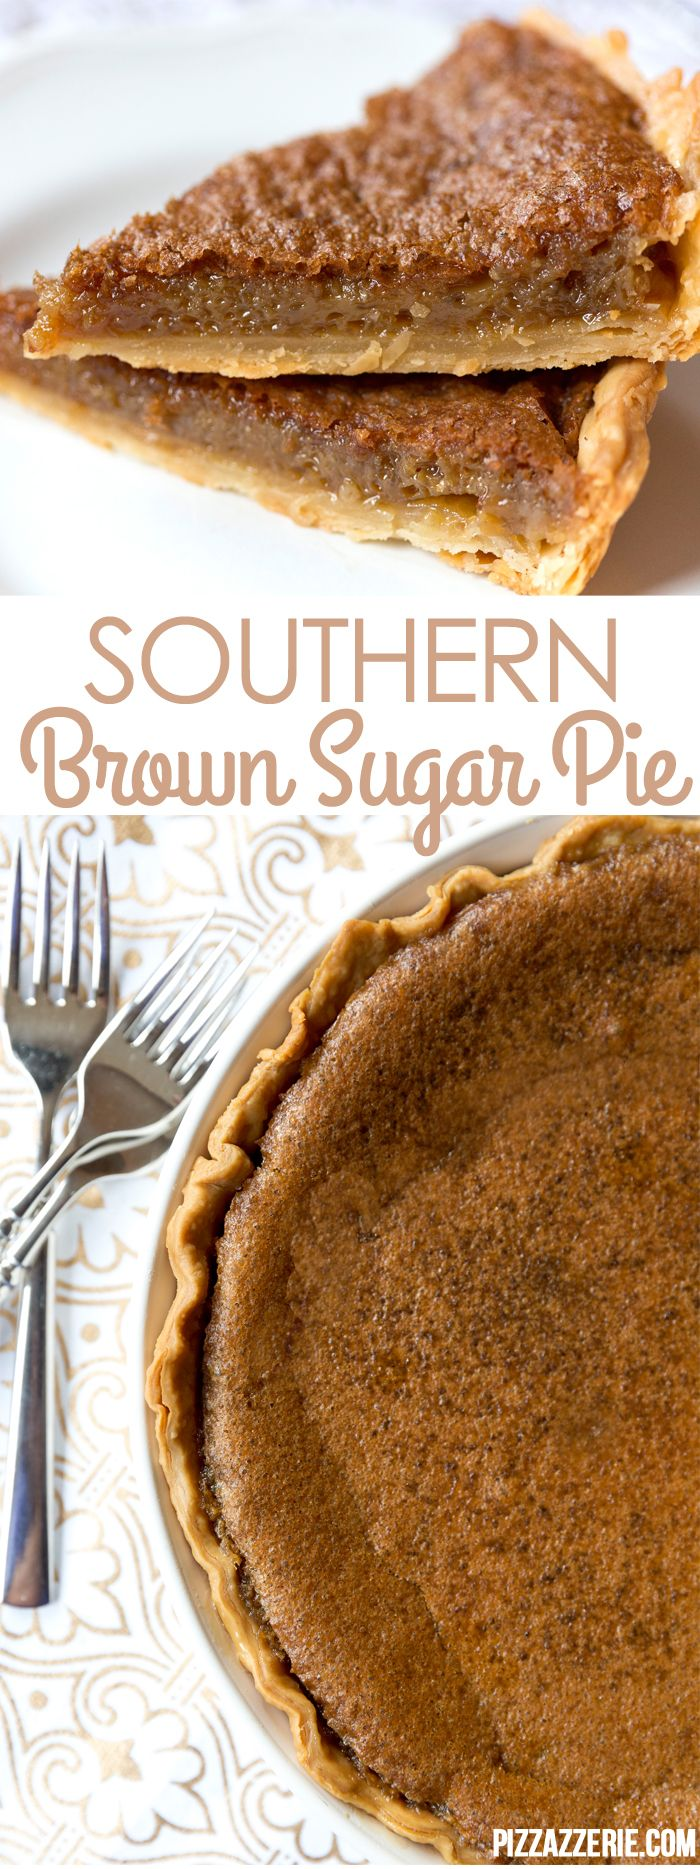 Southern Brown Sugar Pie! If you've never tried this brown sugar pie, it's a must.